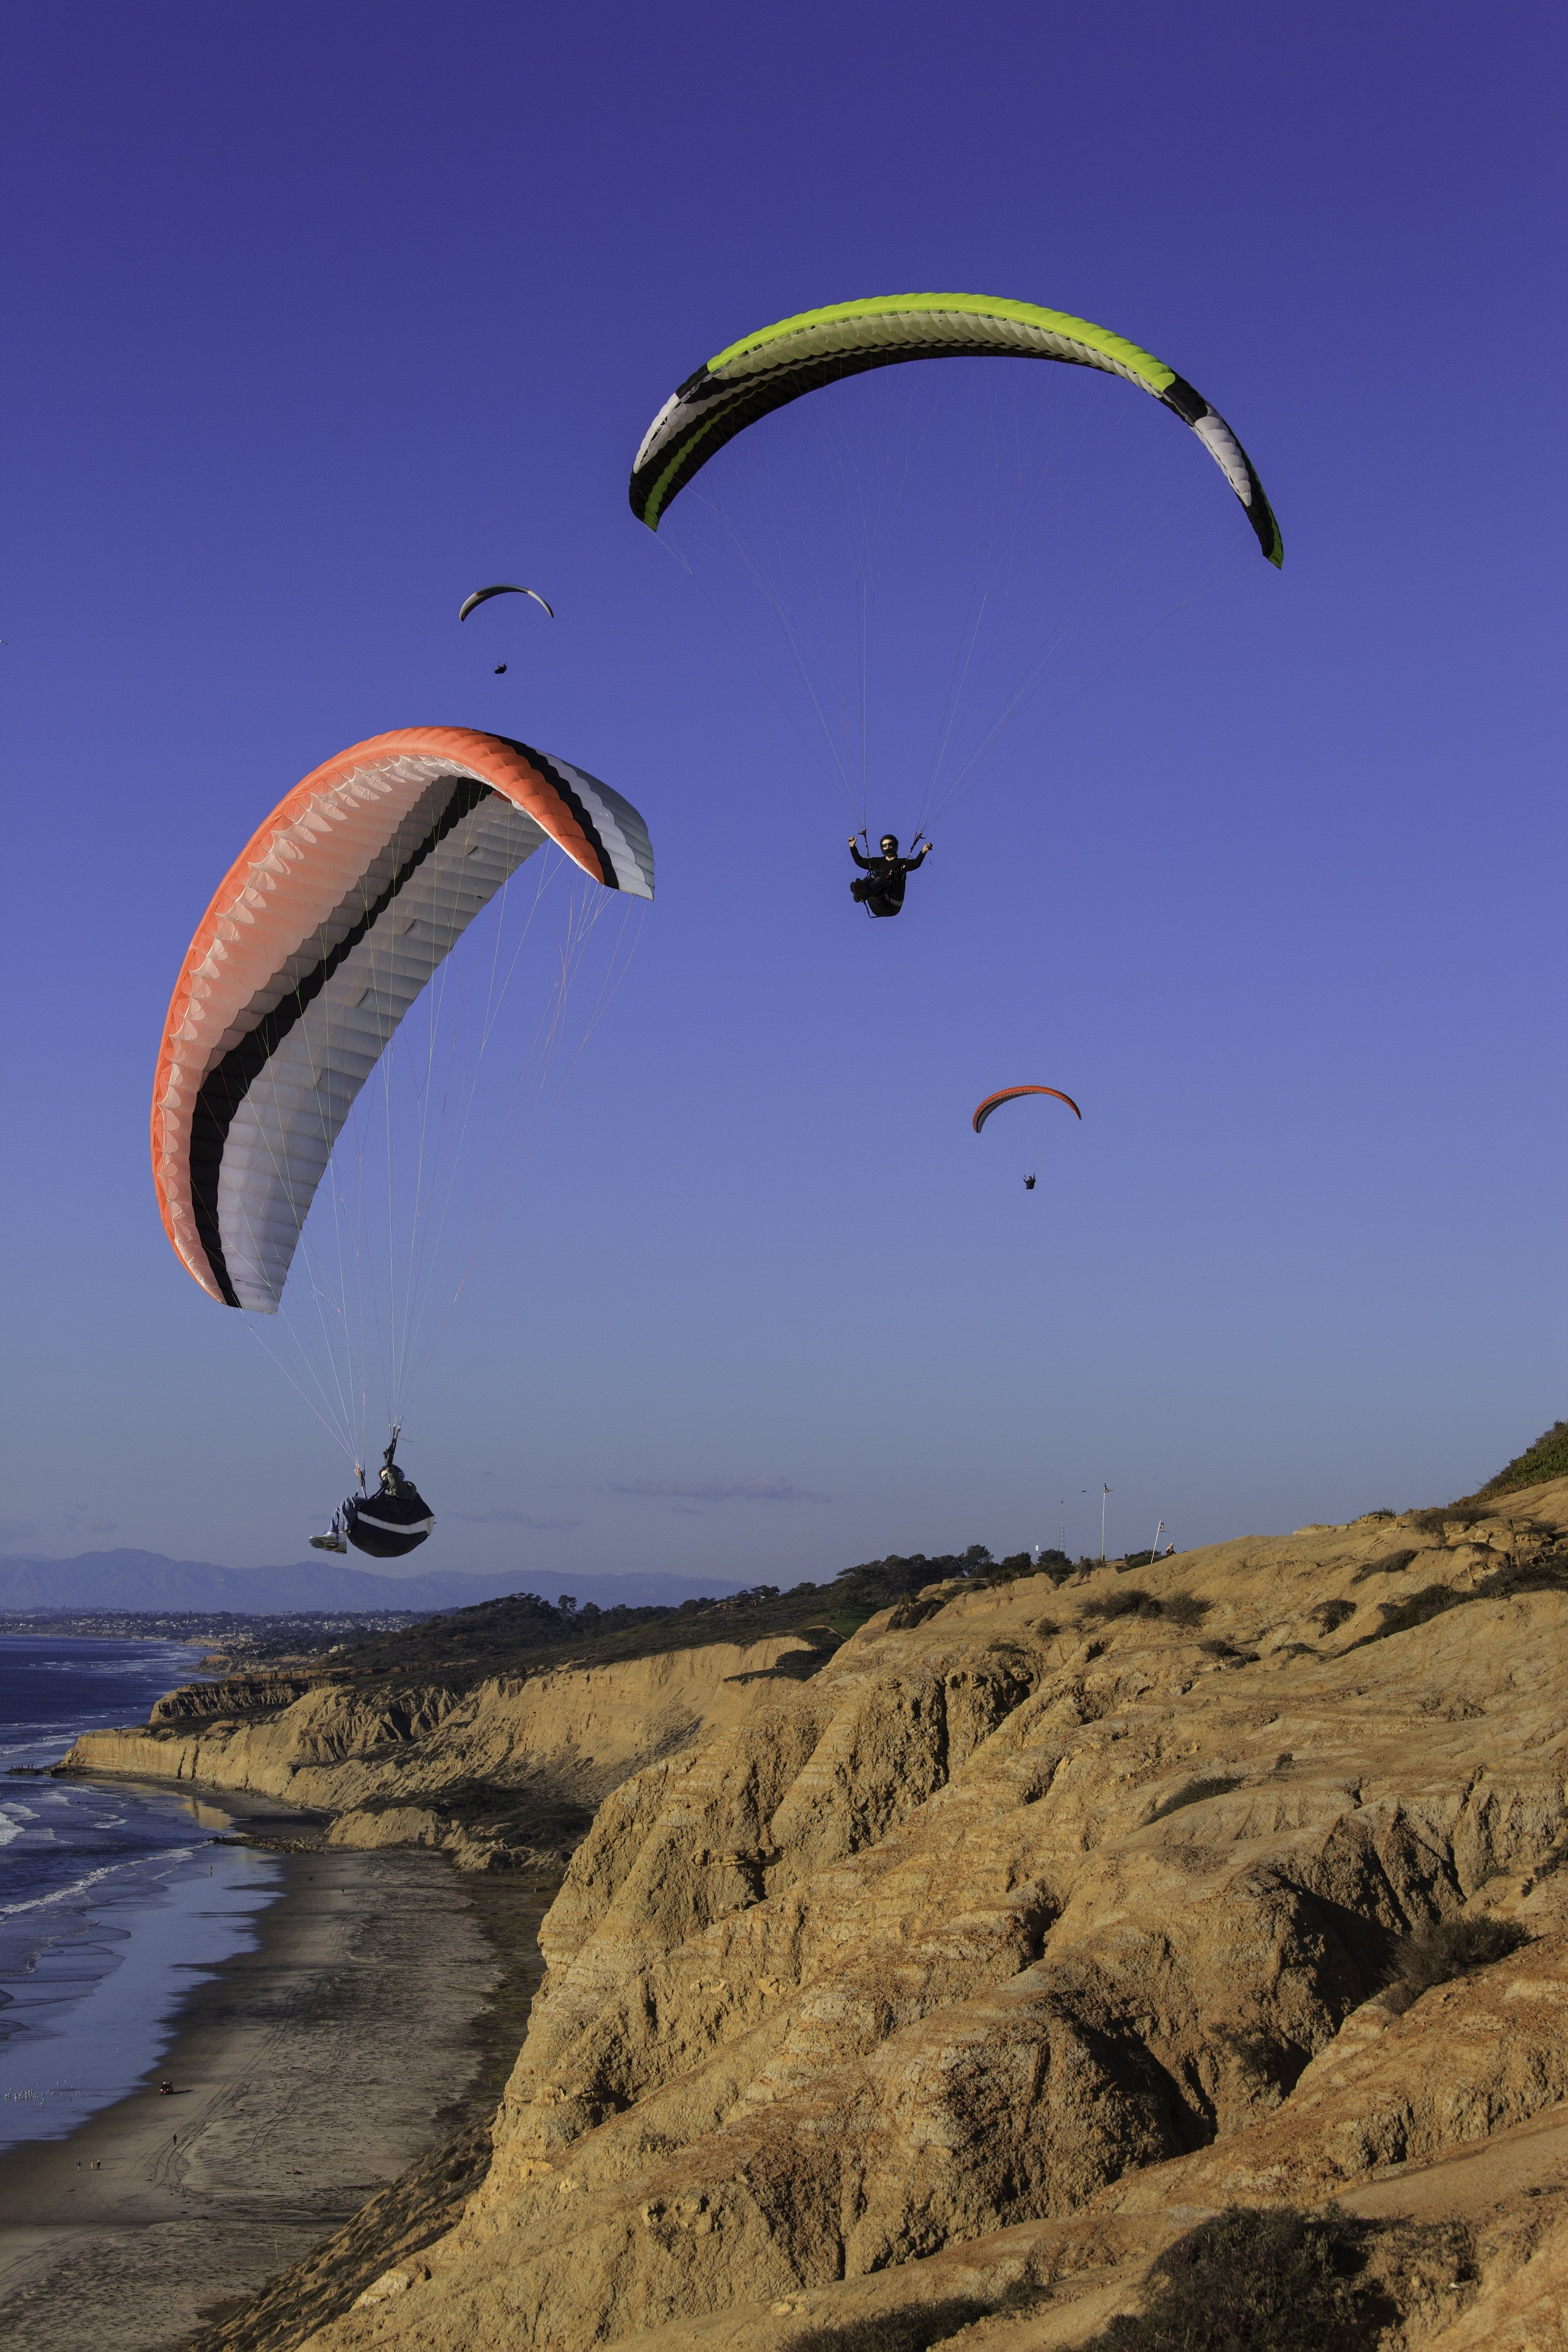 Gliders with colorful parachutes against blue sky and over the bluffs at Torrey Pines Gliderport.